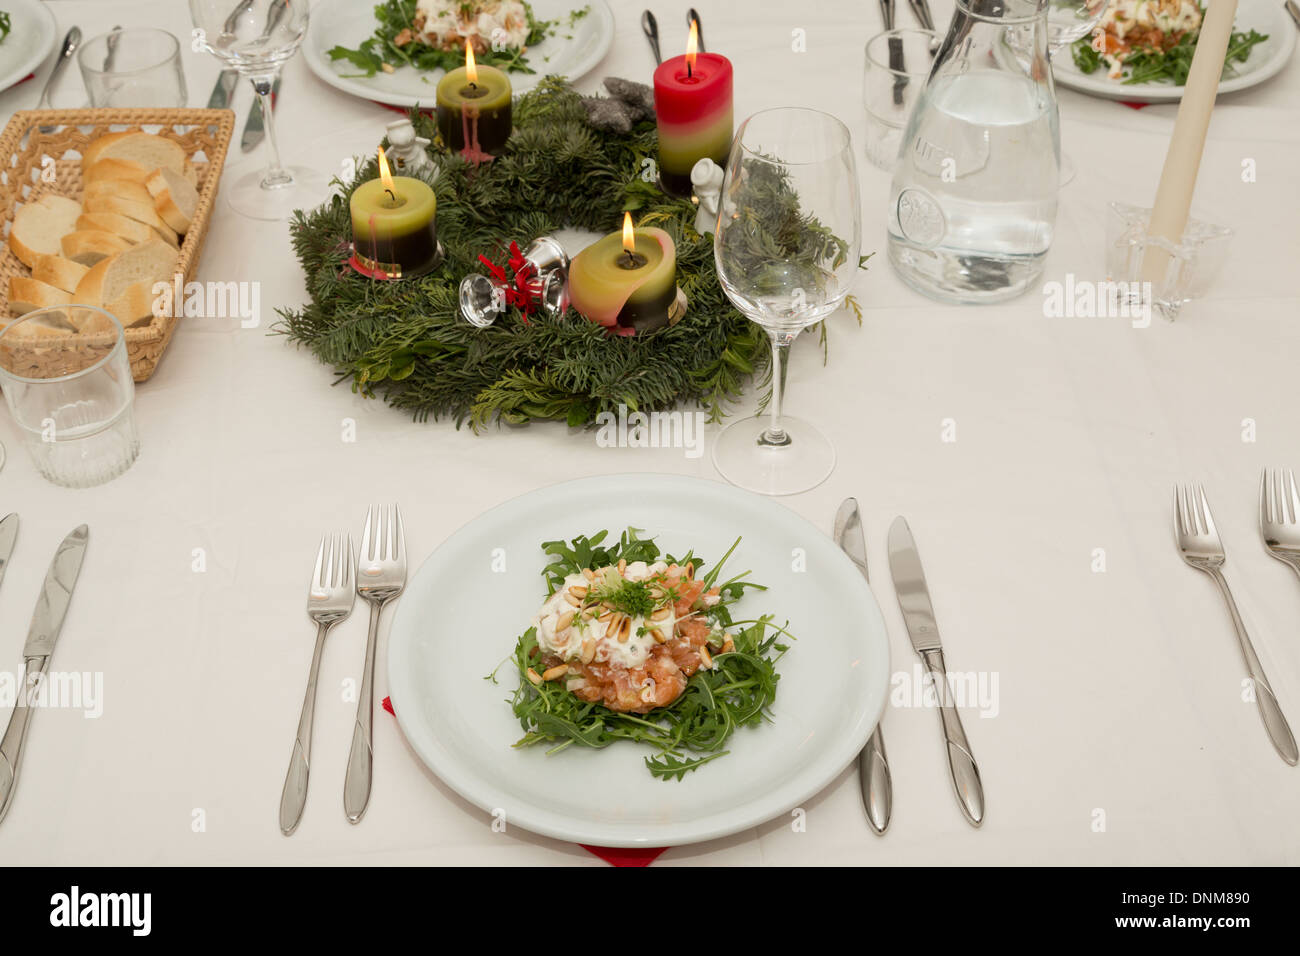 A photograph of a table setting at Christmas time. An entree of salmon tartar cream and roasted pine nuts has been served. & A photograph of a table setting at Christmas time. An entree of ...